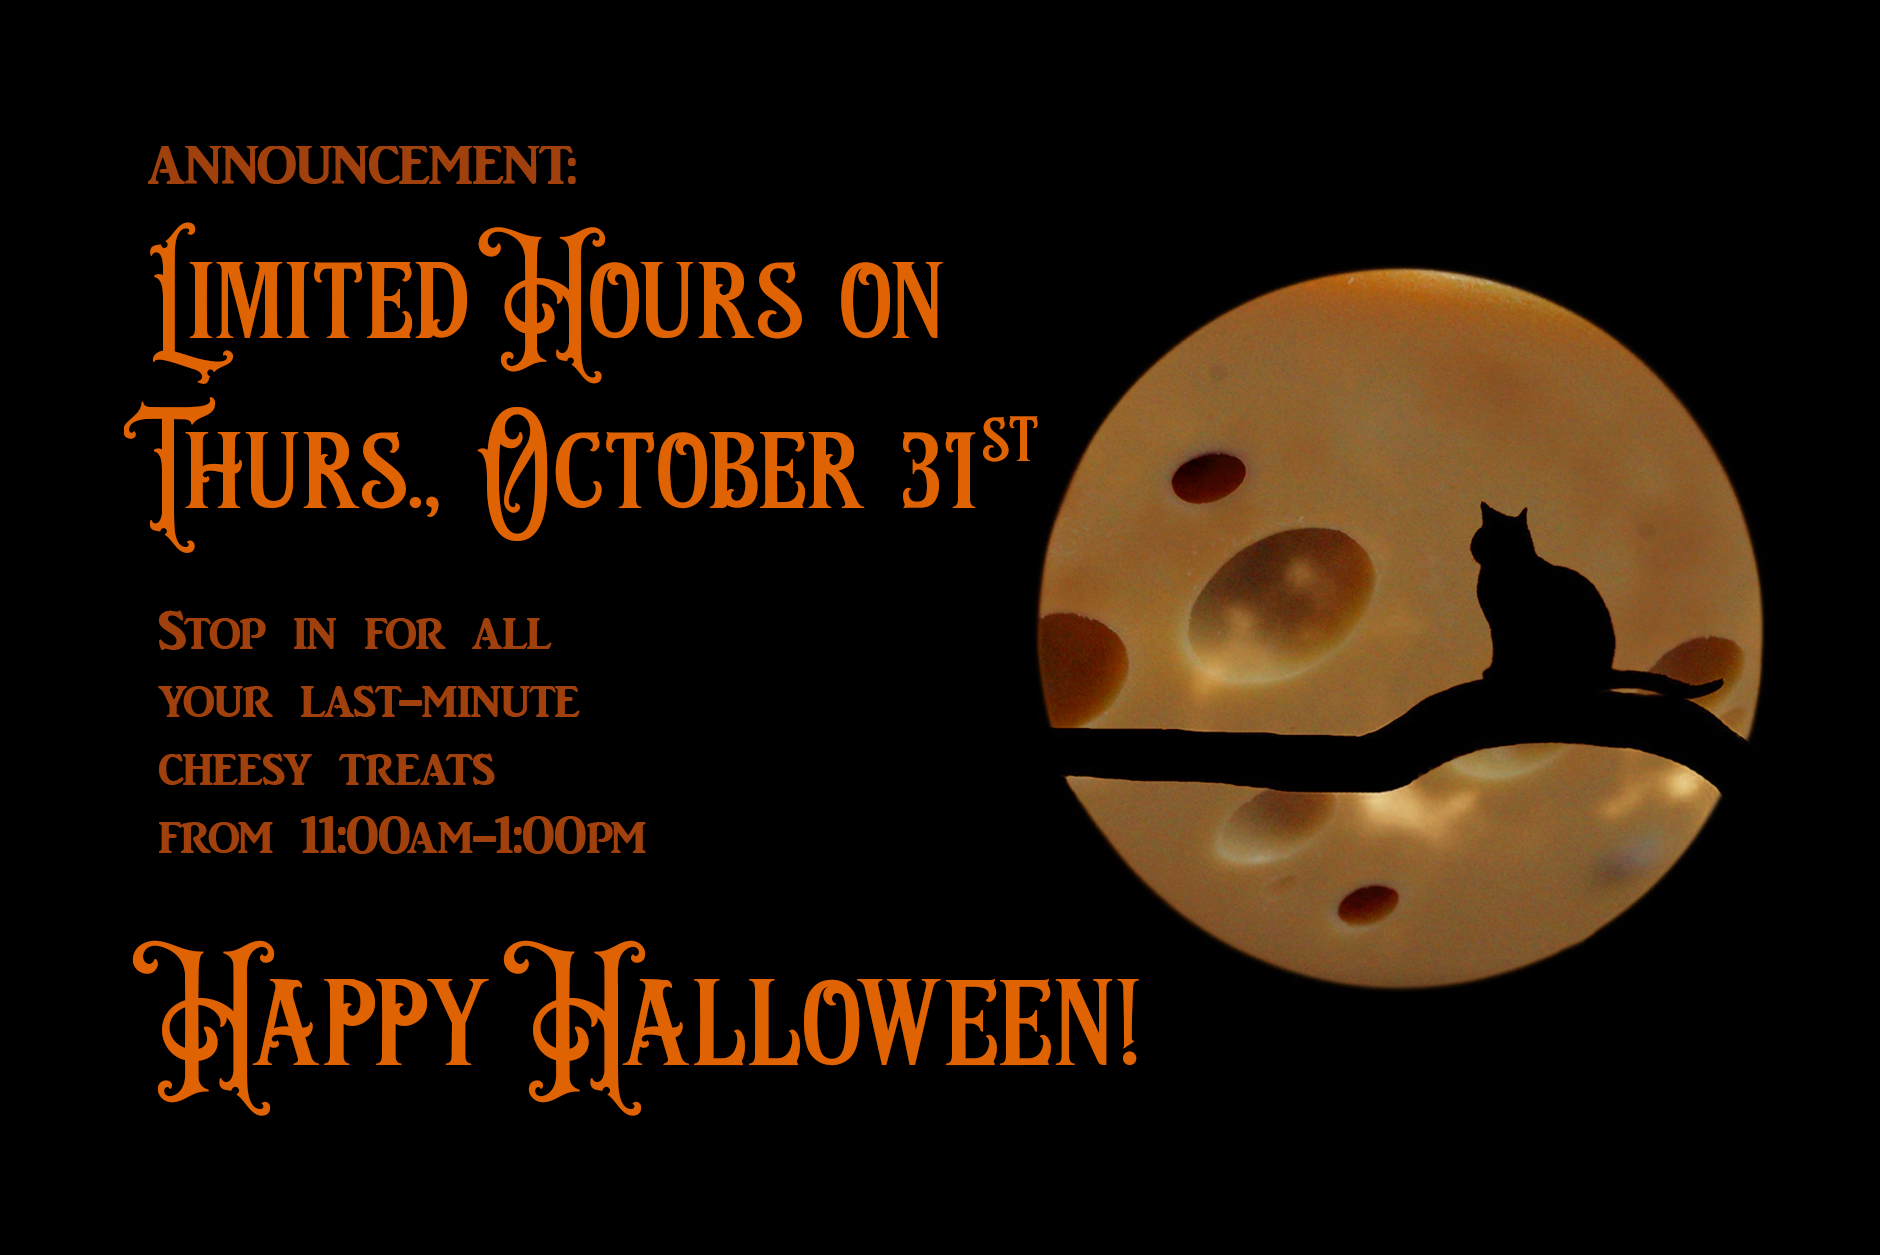 2019 Halloween hours: 11 AM to 1 PM.